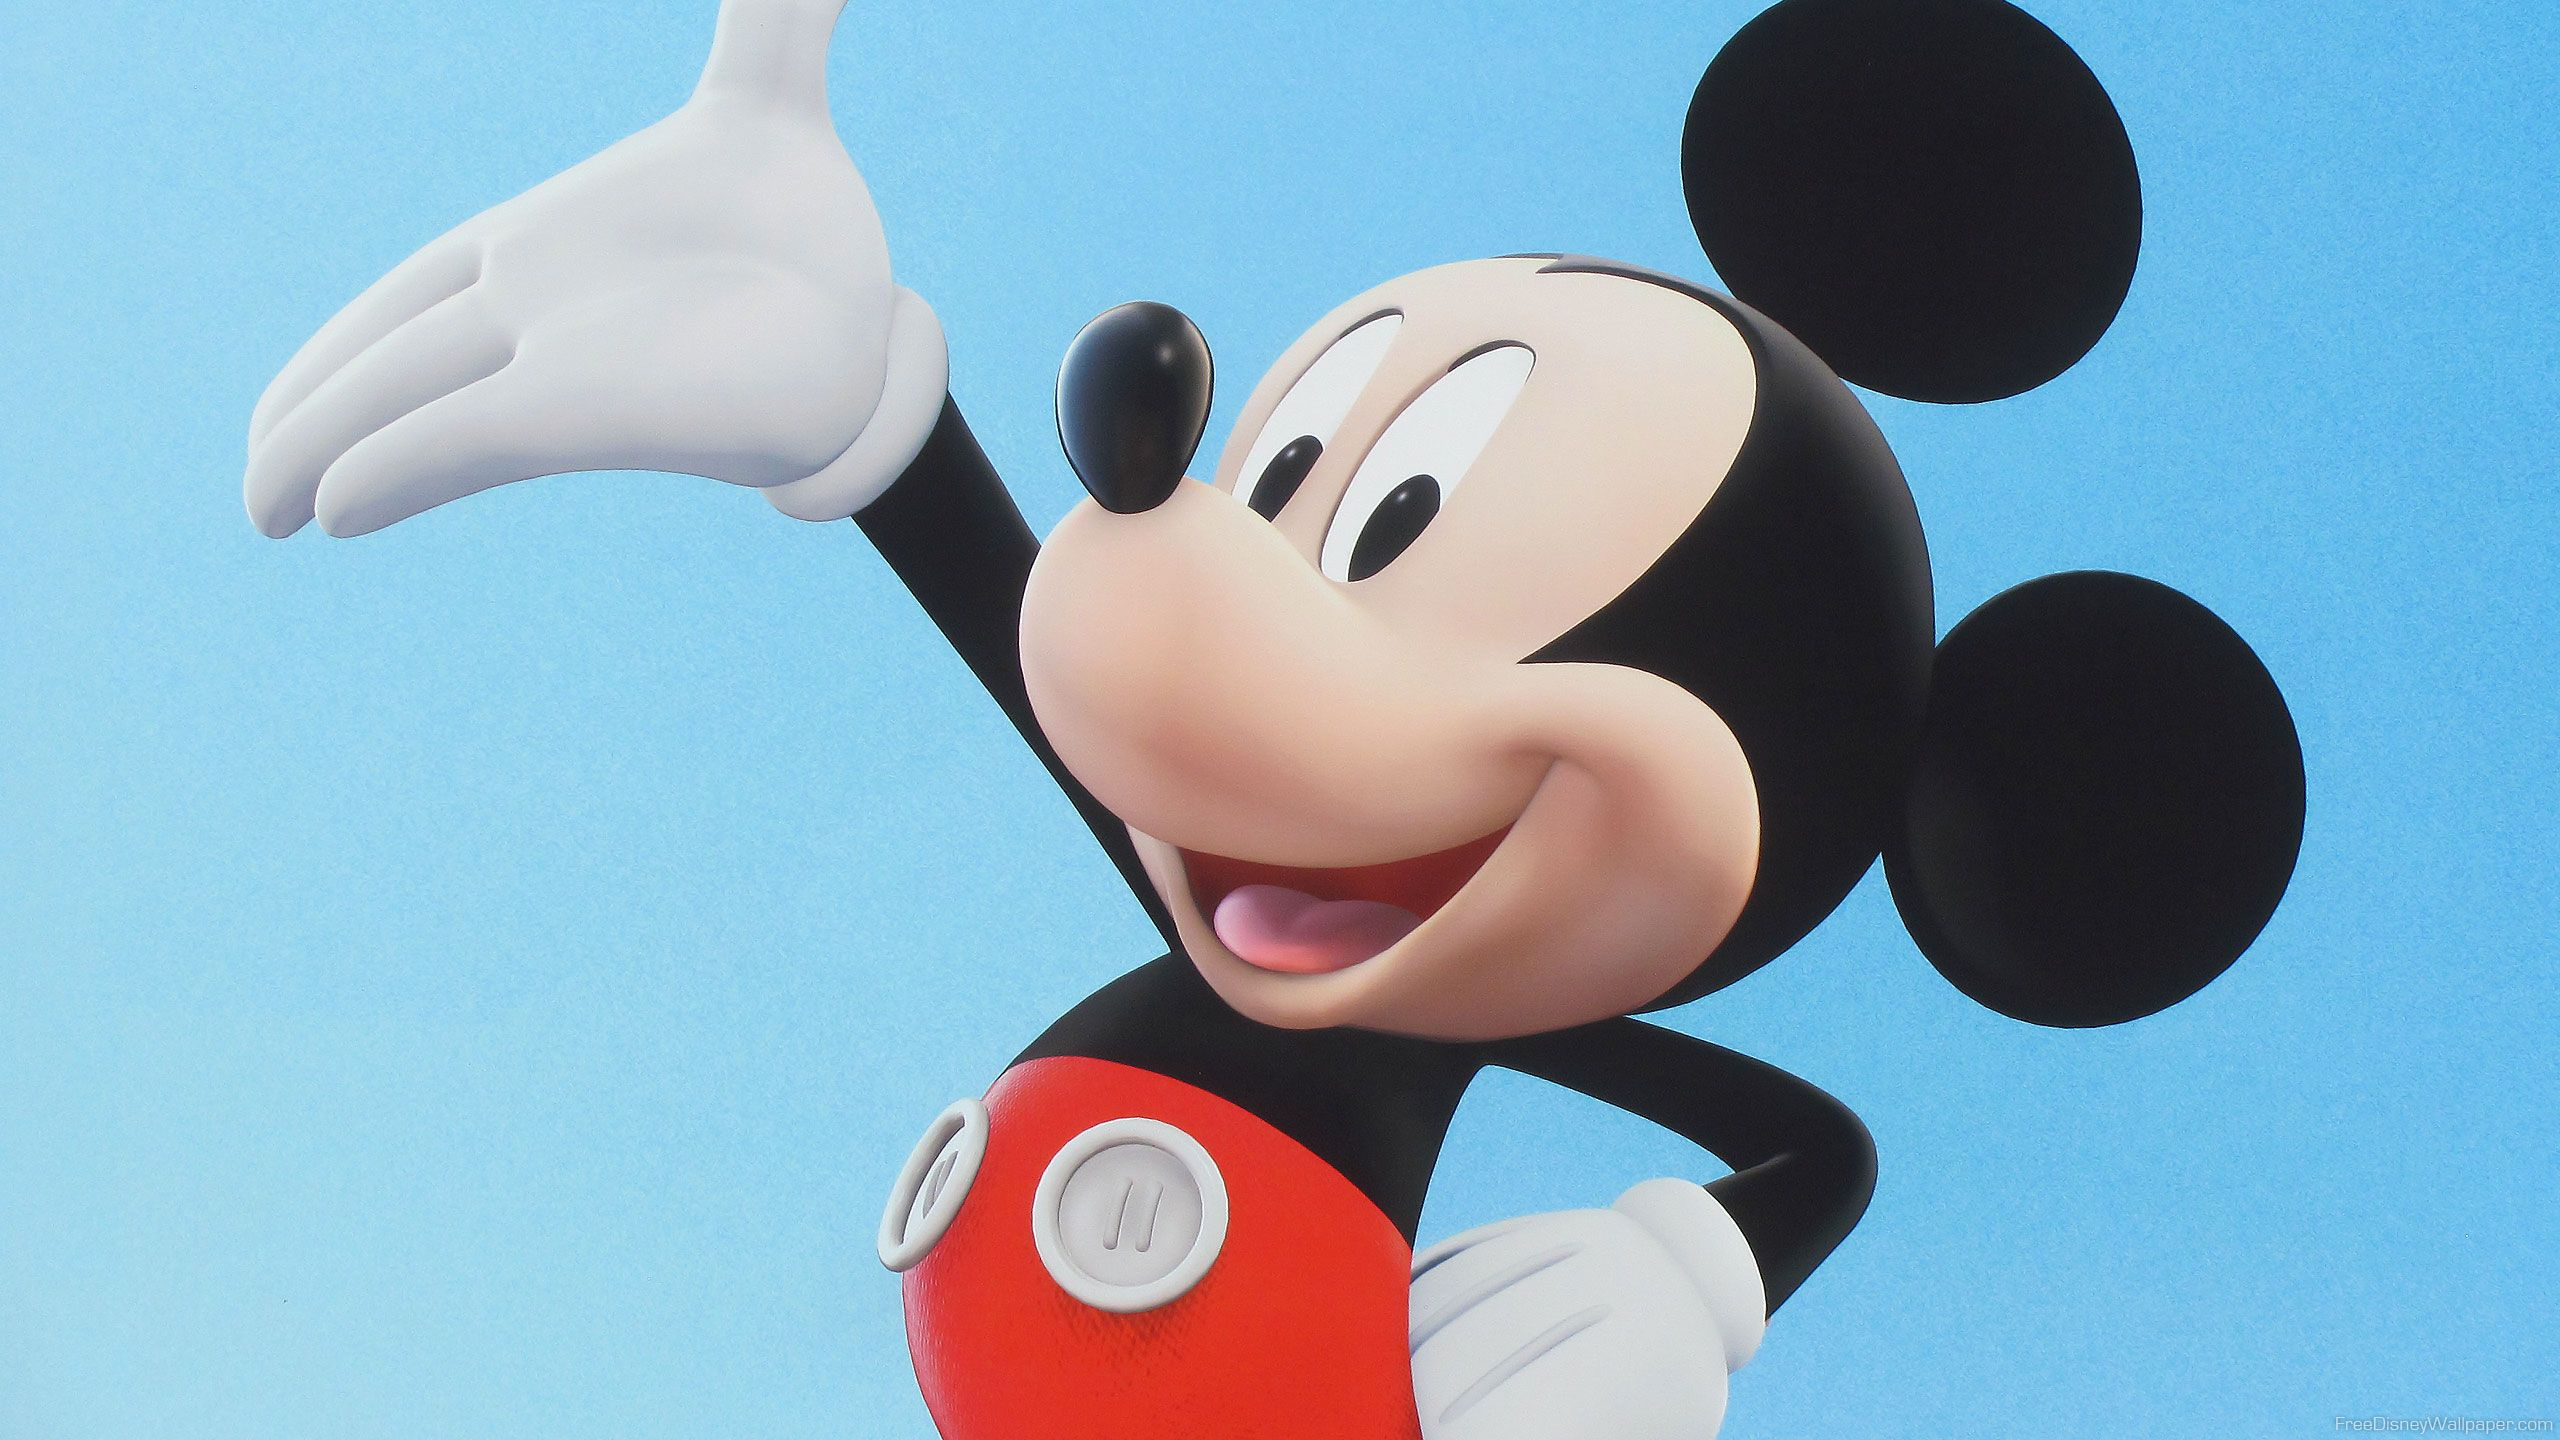 Mickey Mouse Iphone Wallpapers Top Free Mickey Mouse Iphone